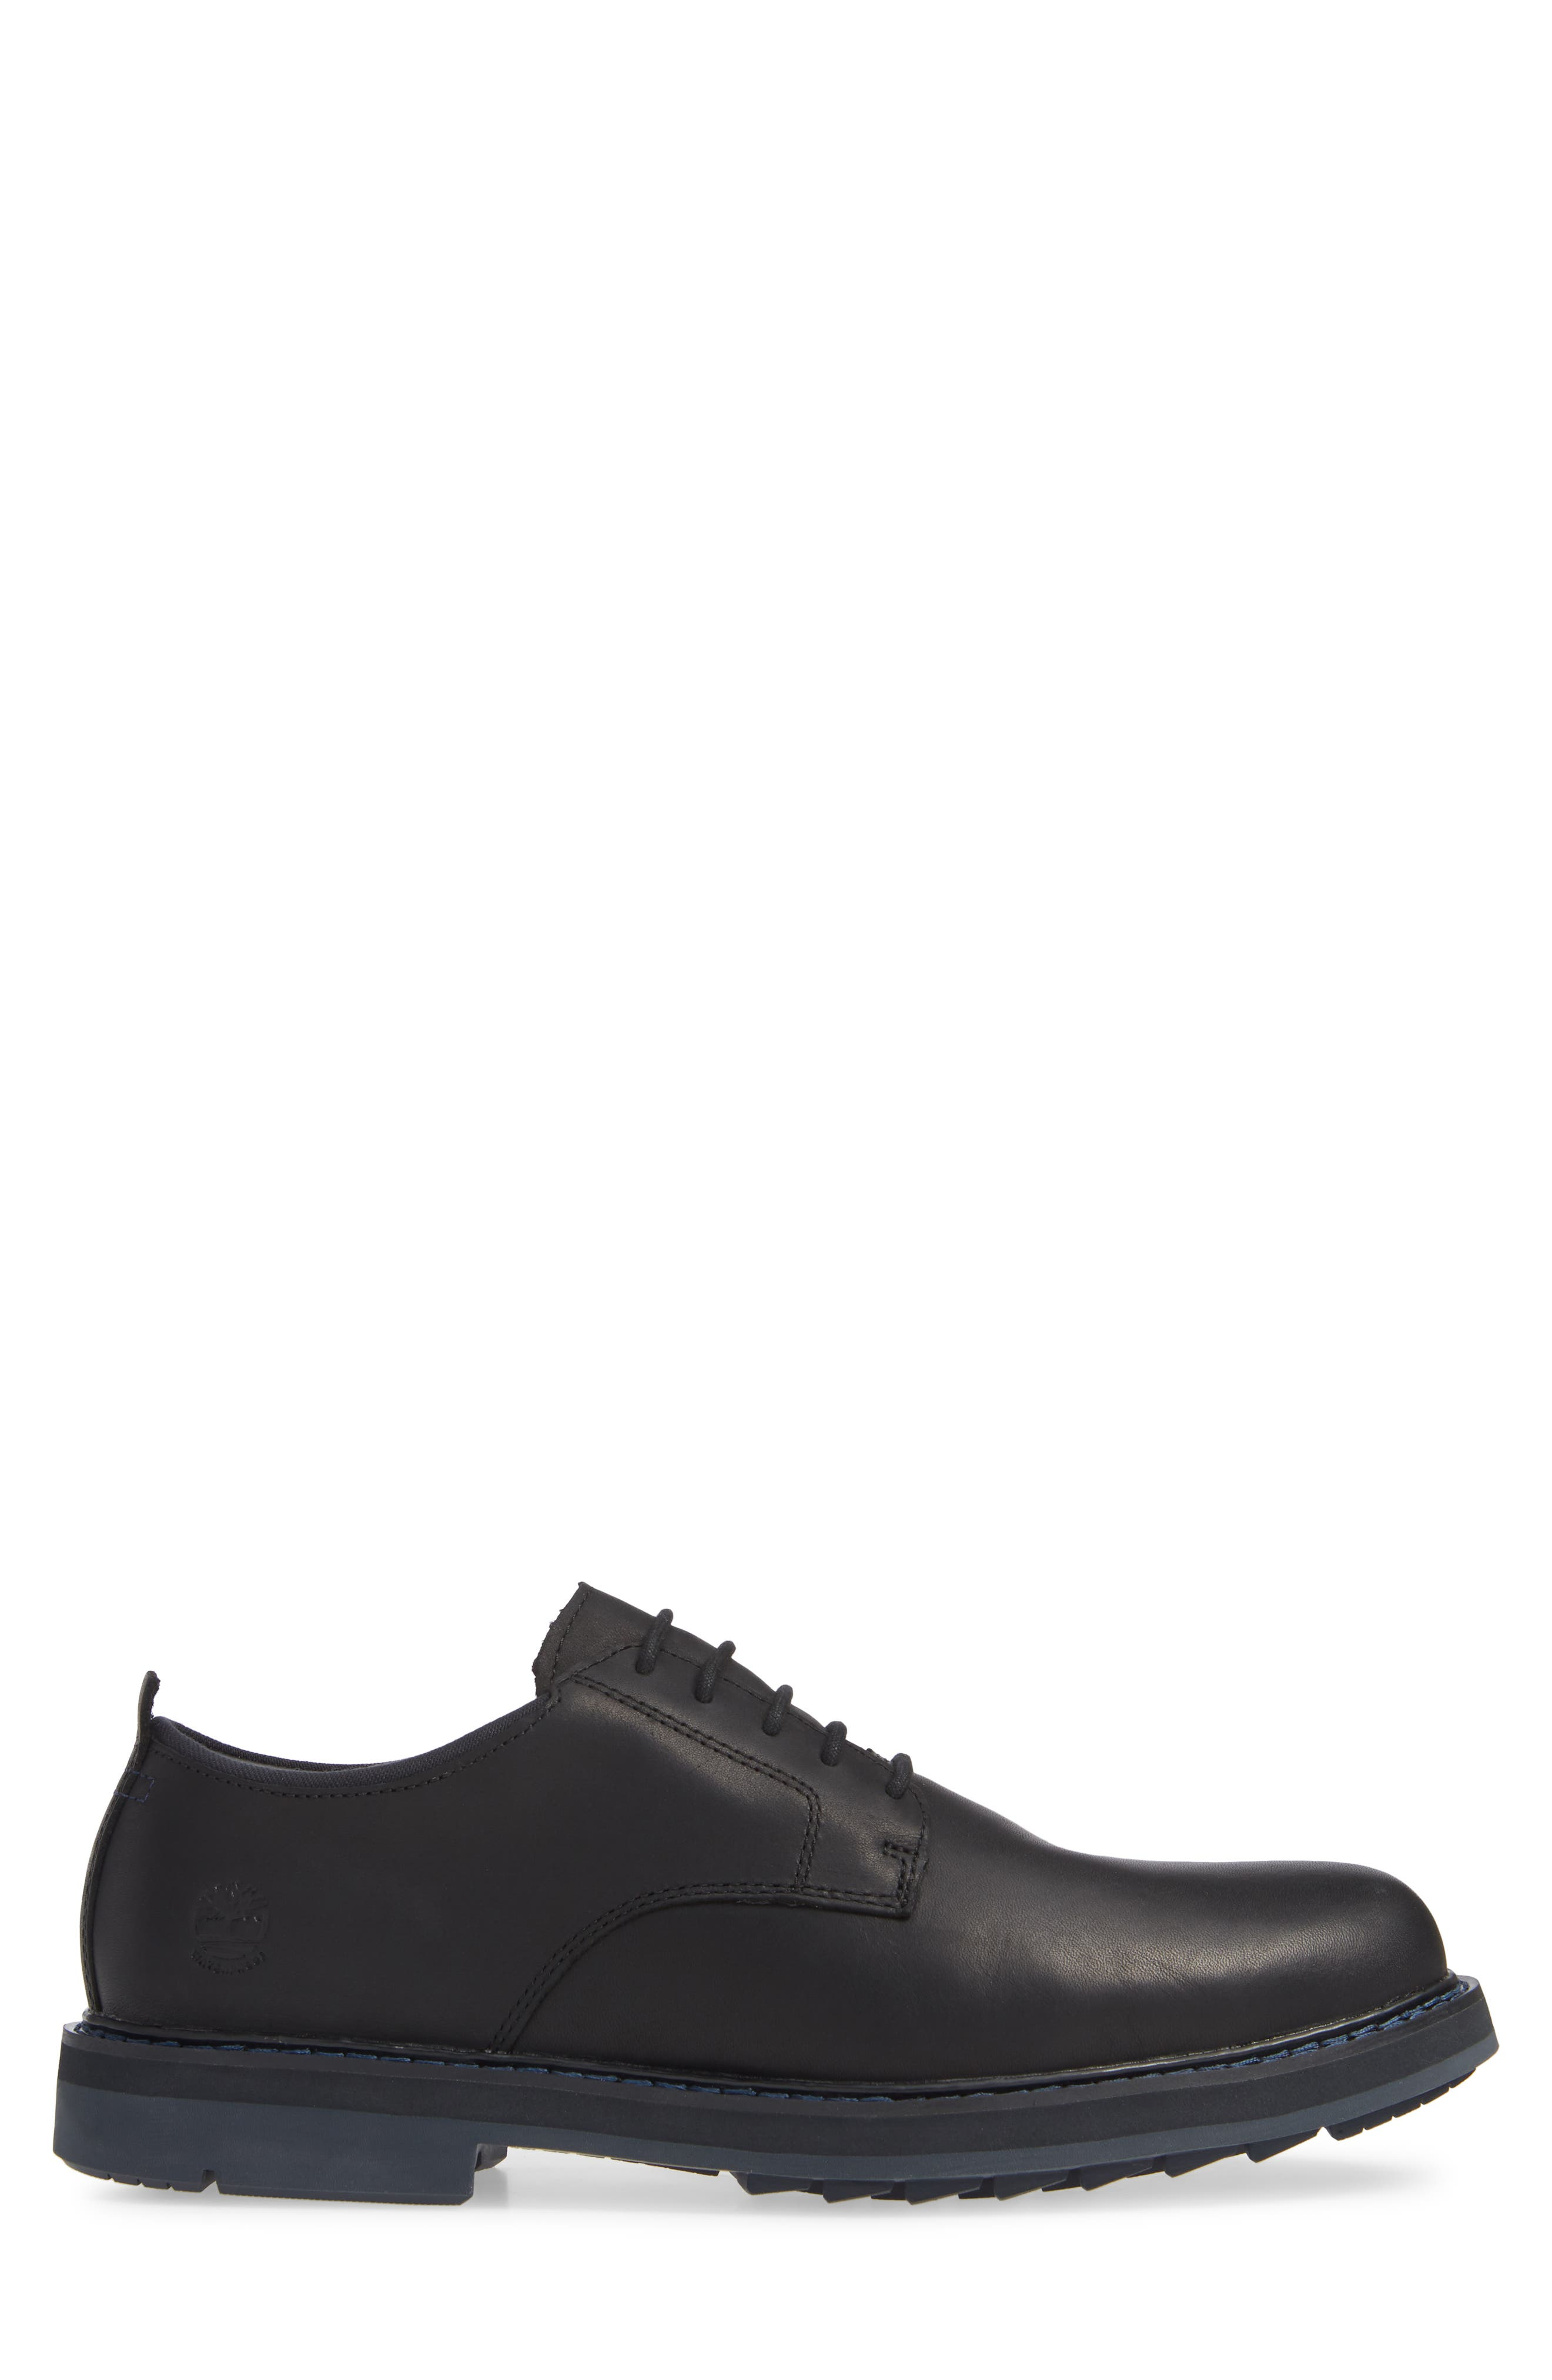 TIMBERLAND, Squall Canyon Waterproof Plain Toe Derby, Alternate thumbnail 3, color, BLACK LEATHER